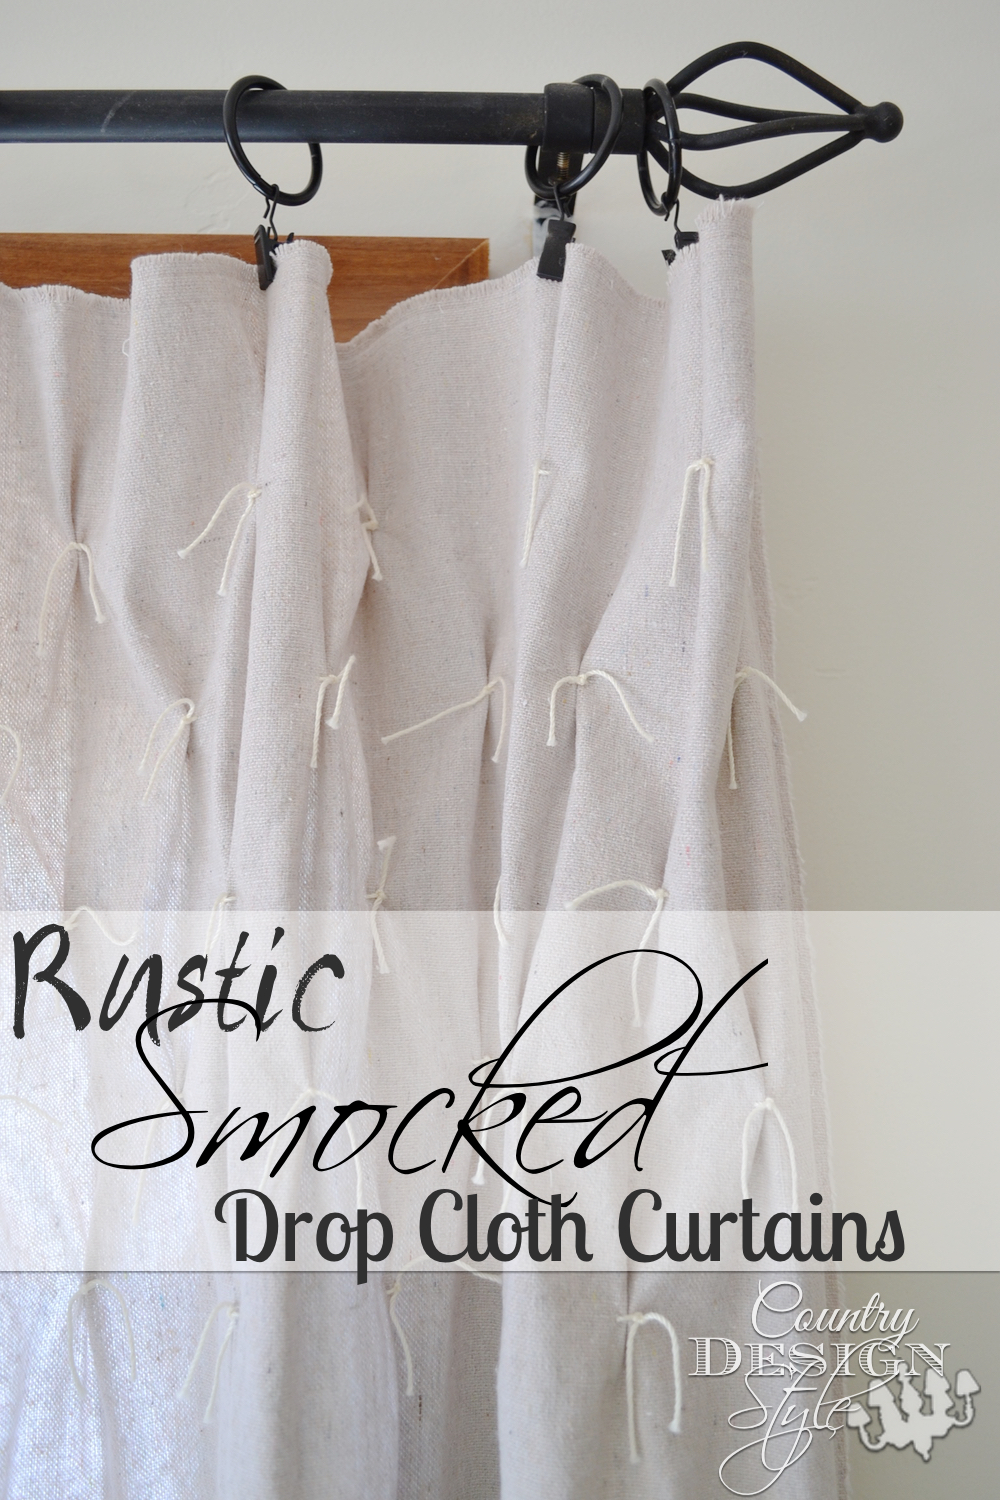 Rustic Smocked Drop Cloth Curtains Country Design Style